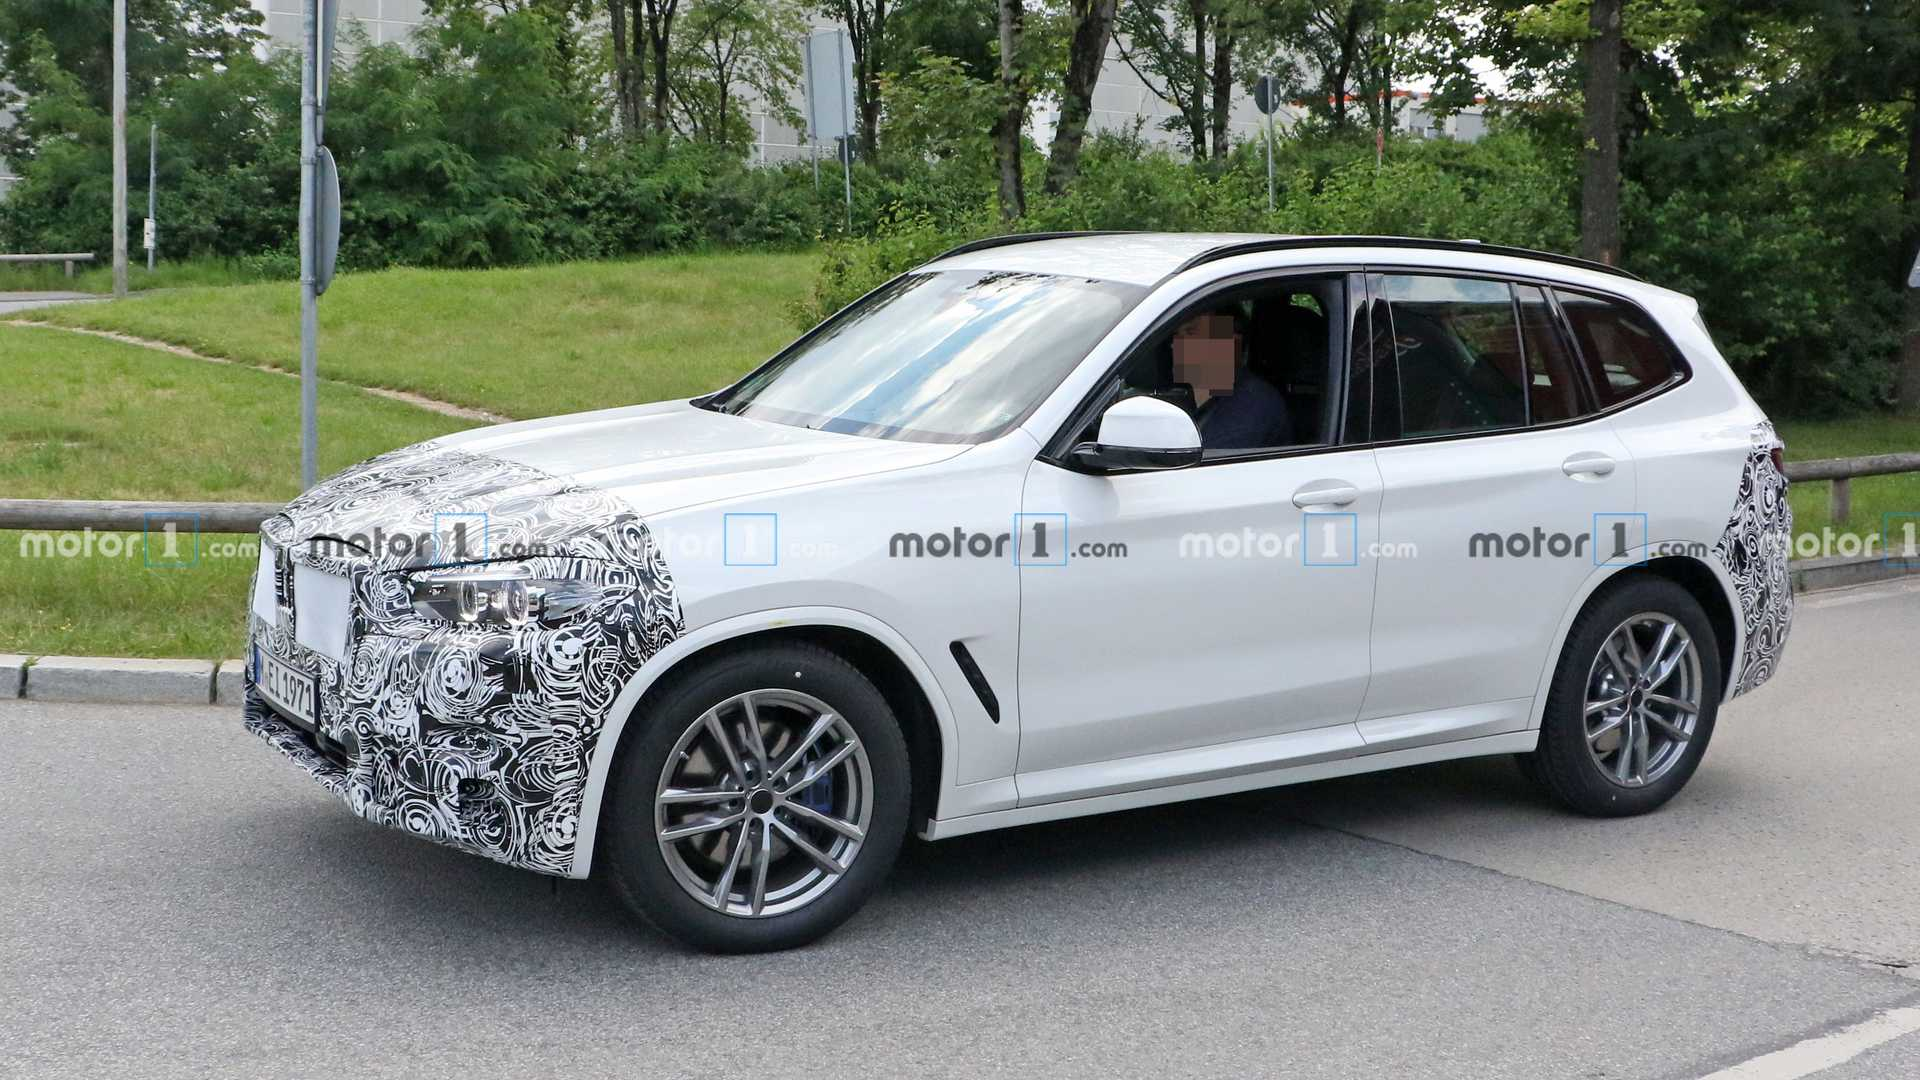 2022-bmw-x​3-lci-spy-​photo